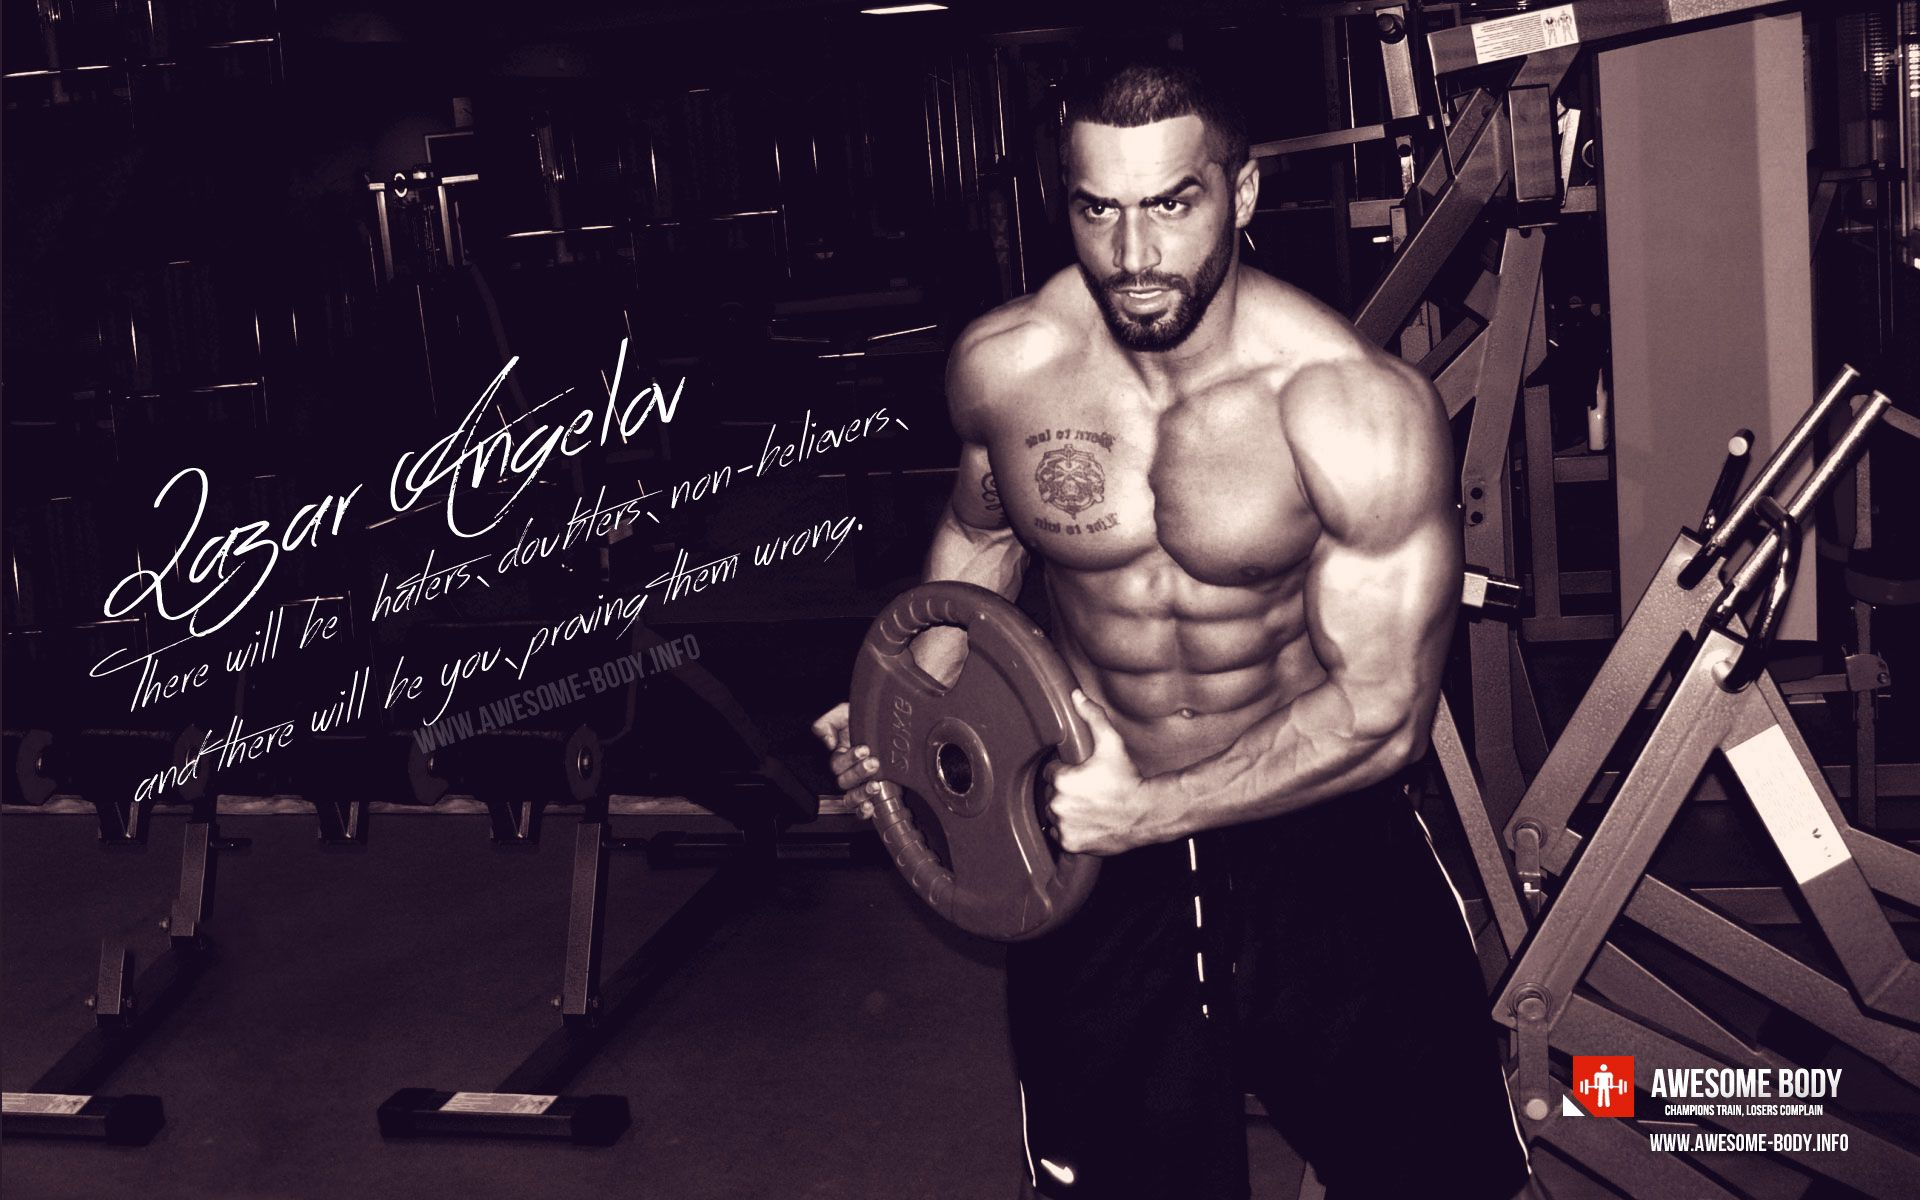 Lazar Angelov   motivational poster and wallpaper - Awesome Body